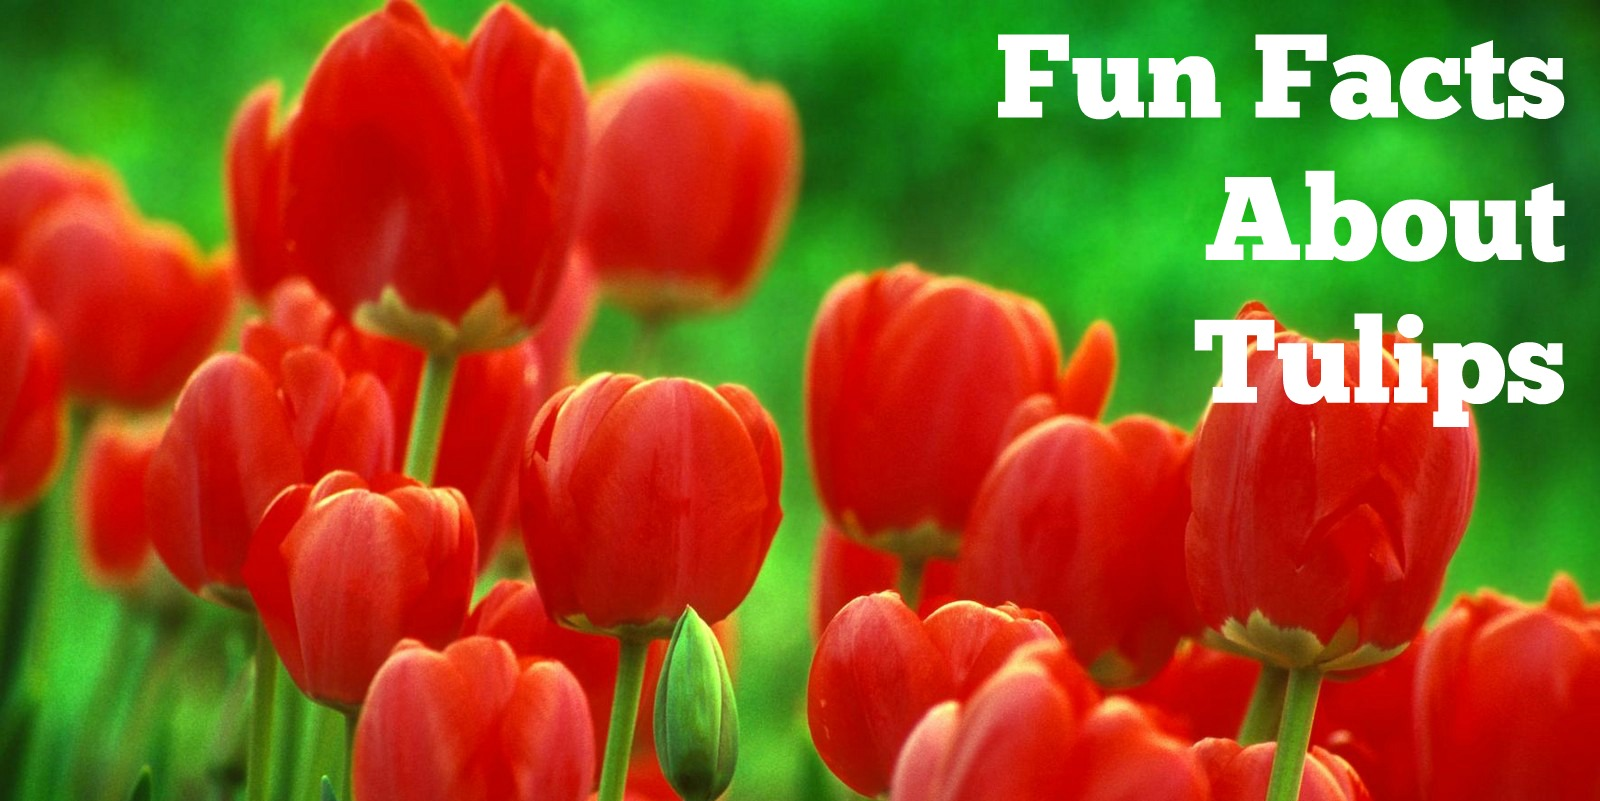 Fun Facts About Tulips - NetFlorist - The Rambling Rose